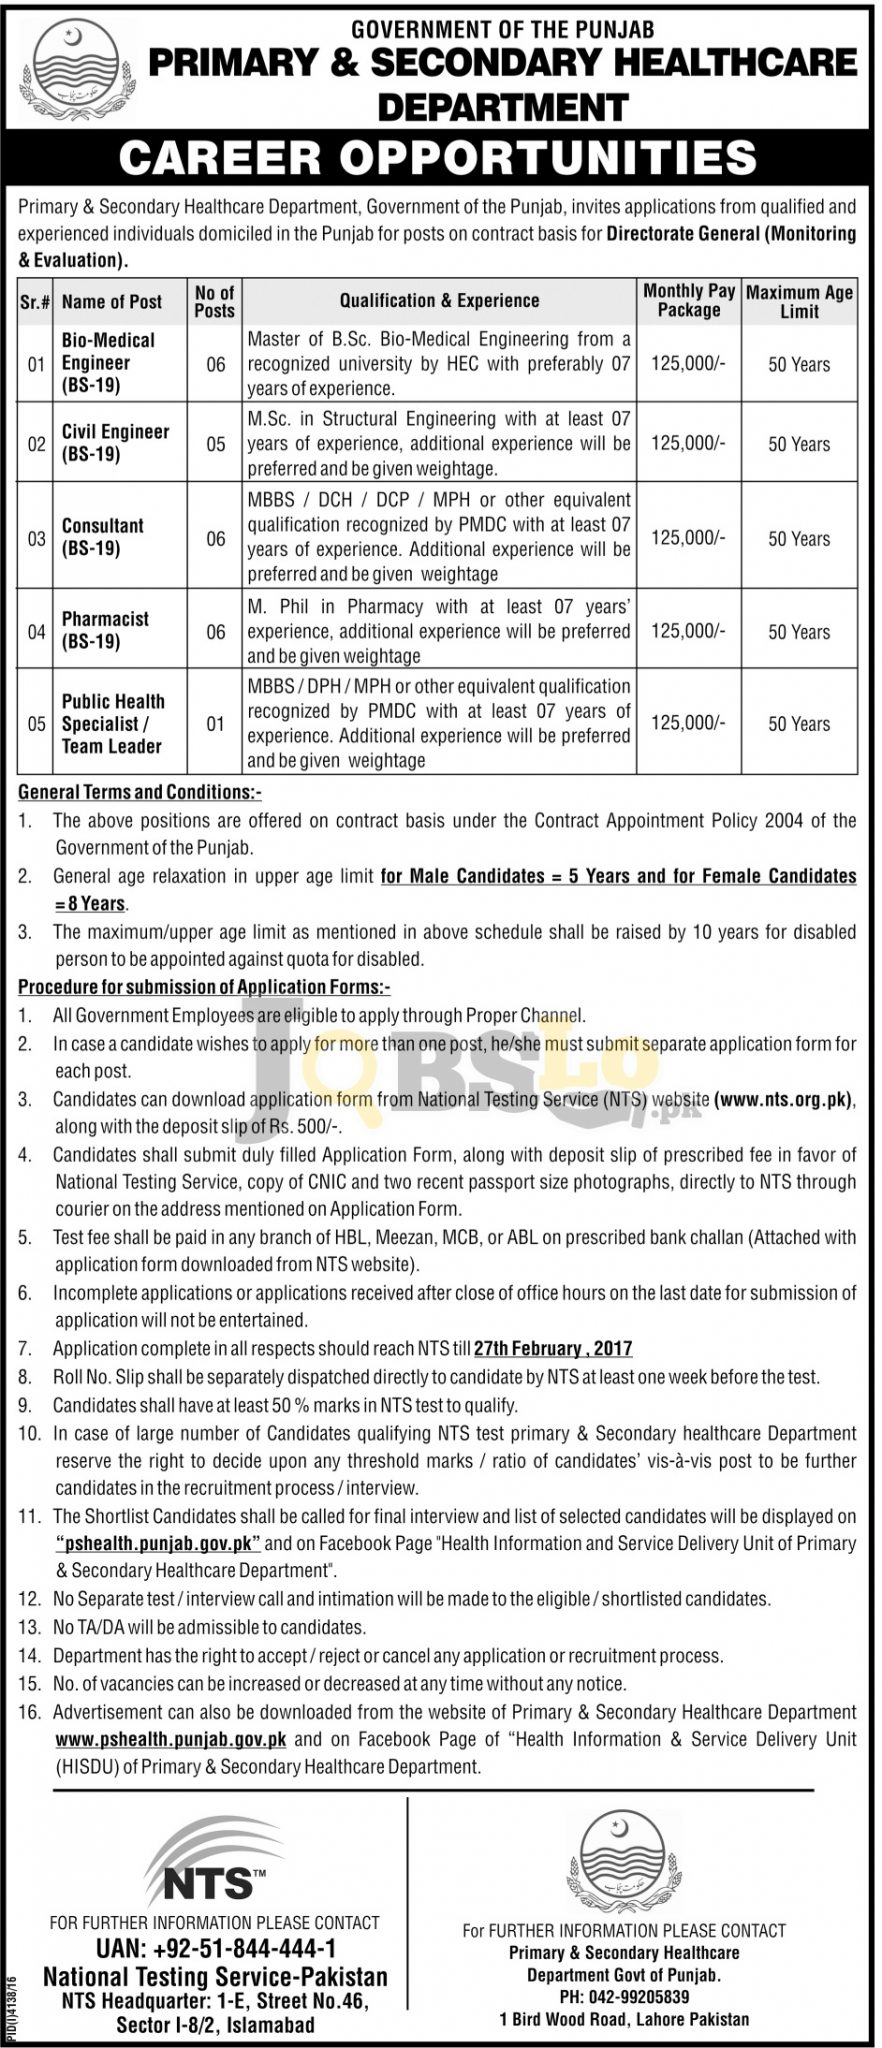 P&S Healthcare Dpt Jobs